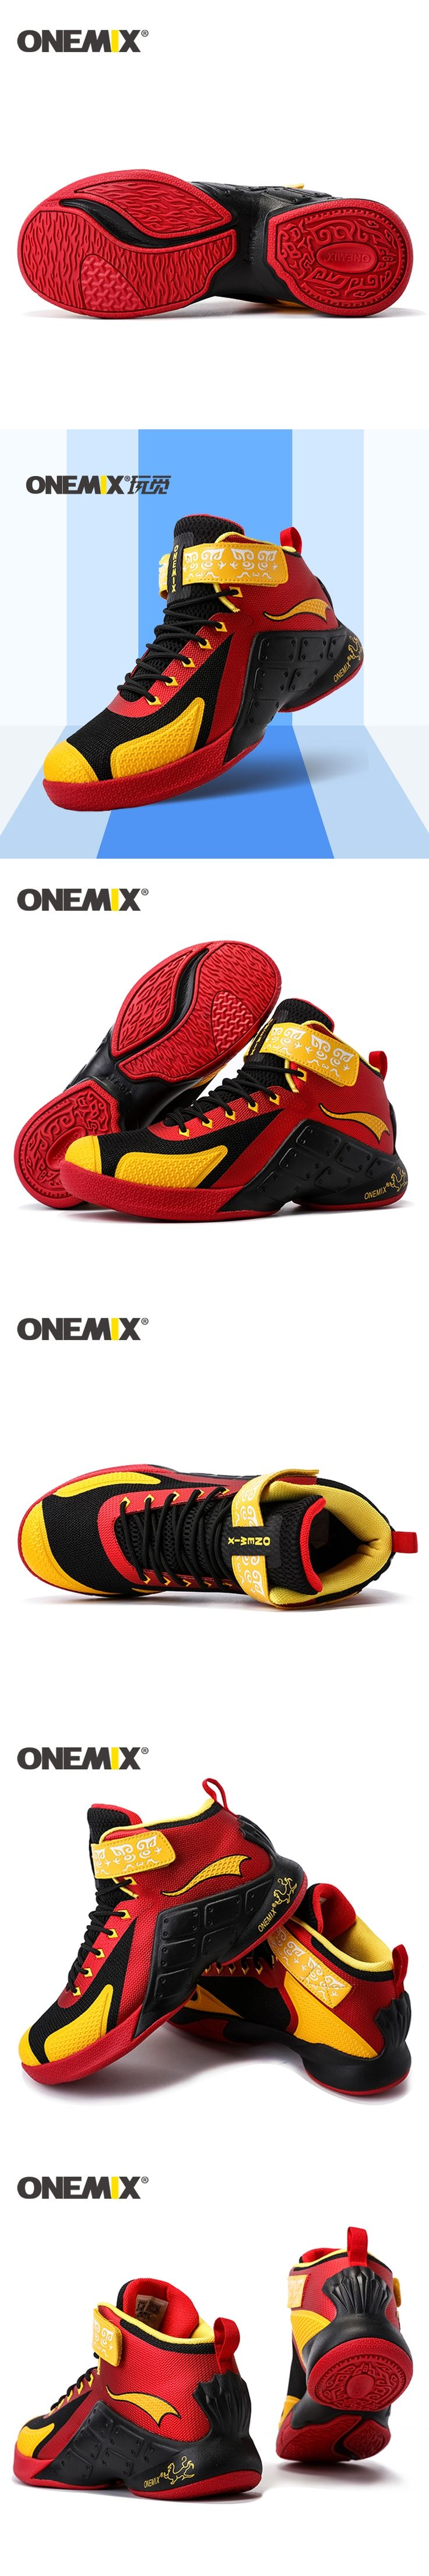 ONEMIX new arrival mens top quailty sport shoes 2016 basketball shoes waterproof males athletic Shoes wholesale US7-12